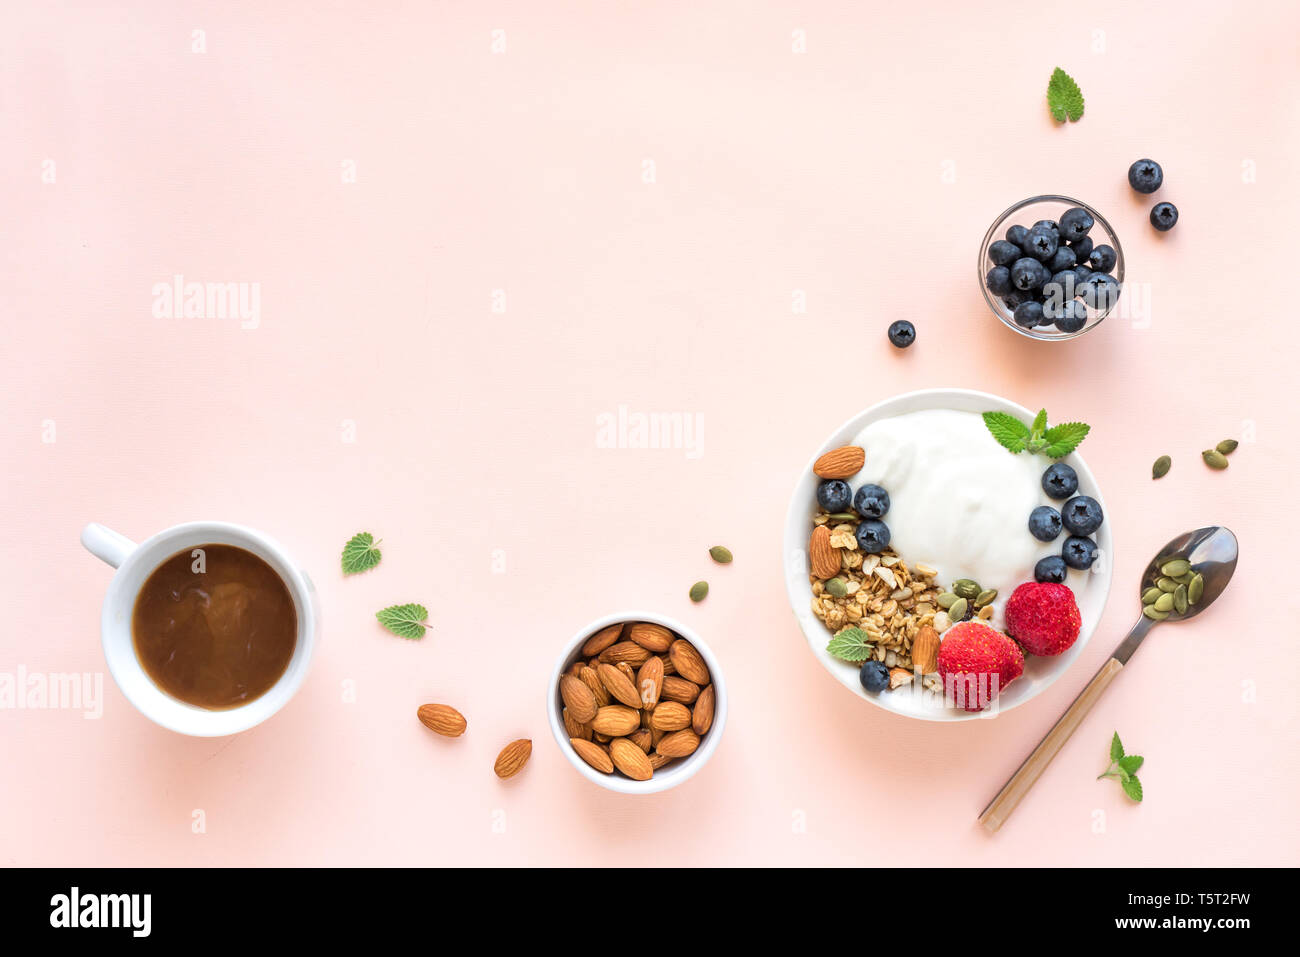 Greek yogurt with homemade granola and berries for healthy breakfast on pink pastel background, top view, copy space. Stock Photo